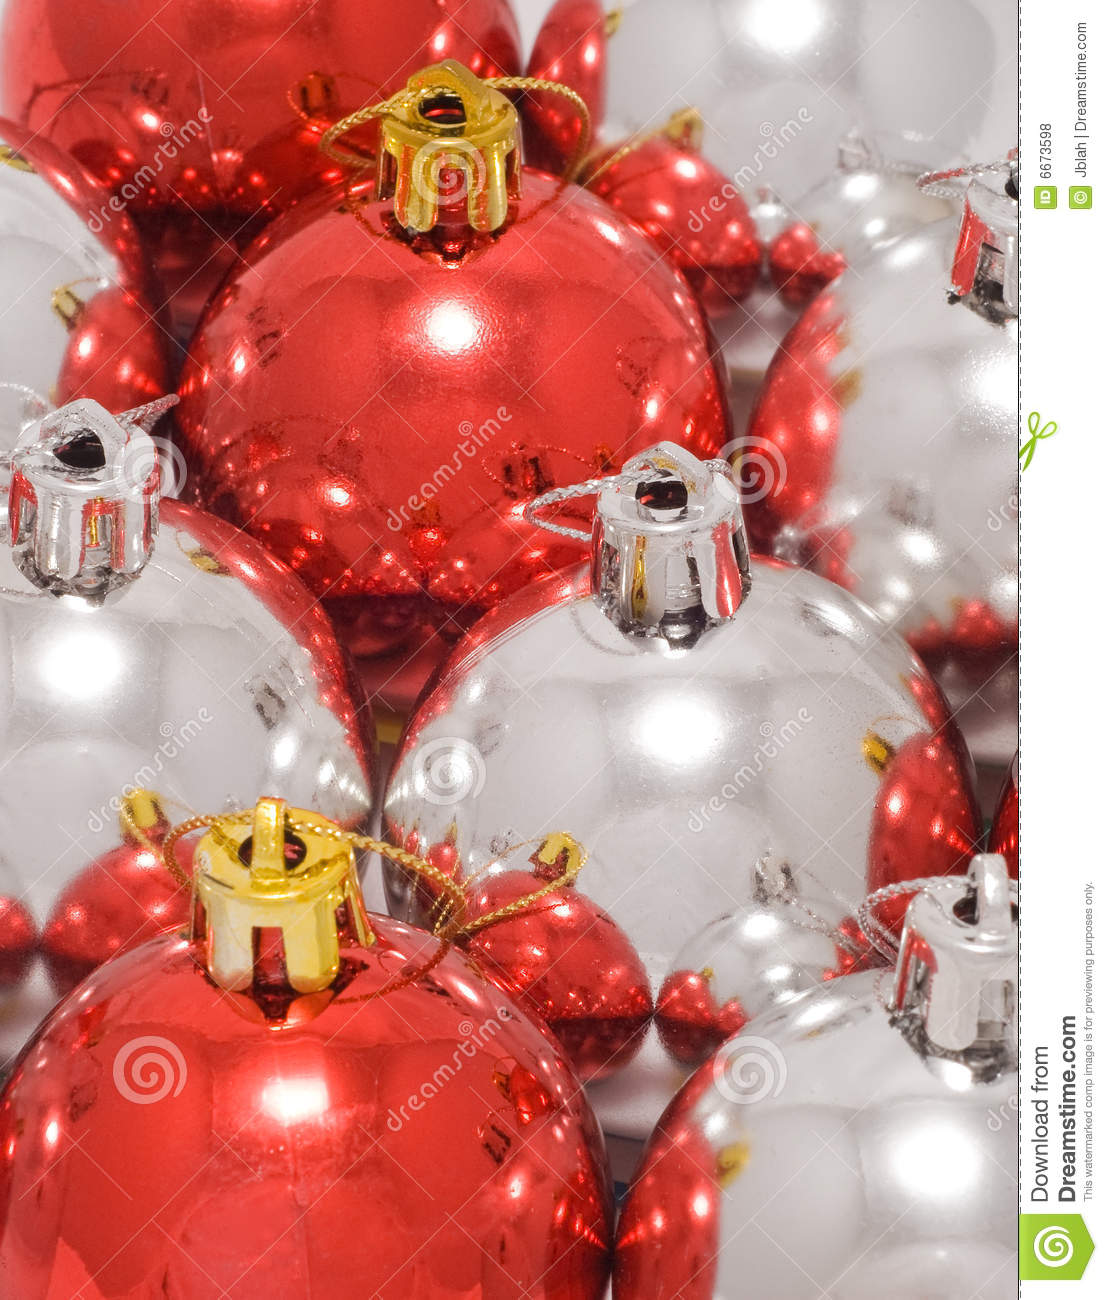 Red and white christmas baubles royalty free stock photos for Christmas red and white